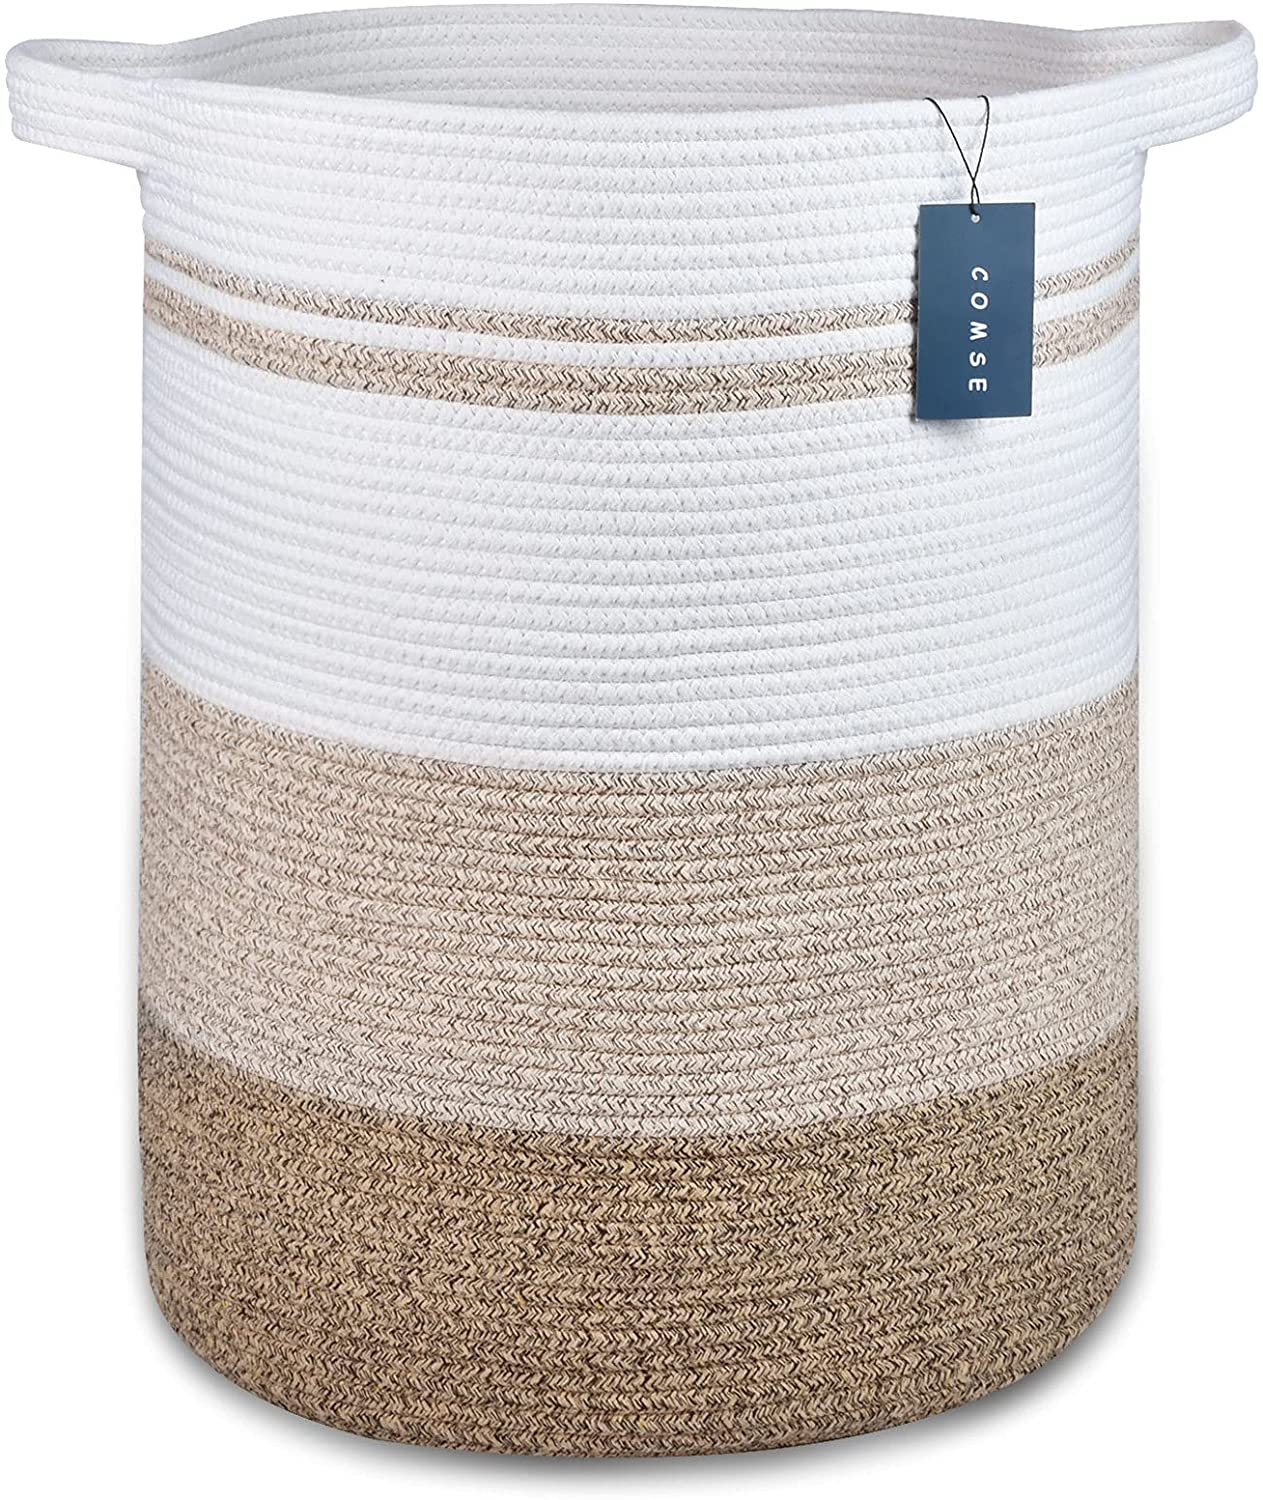 """COMSE Large Blanket Basket, High Storage Basket, Tall Rope Laundry Basket, 15.7""""x 21.7"""", XXXL Cotton Rope Basket, Woven Laundry Basket, Toy Basket, Clothes Baskets,Woven Basket,Gradient Brown"""